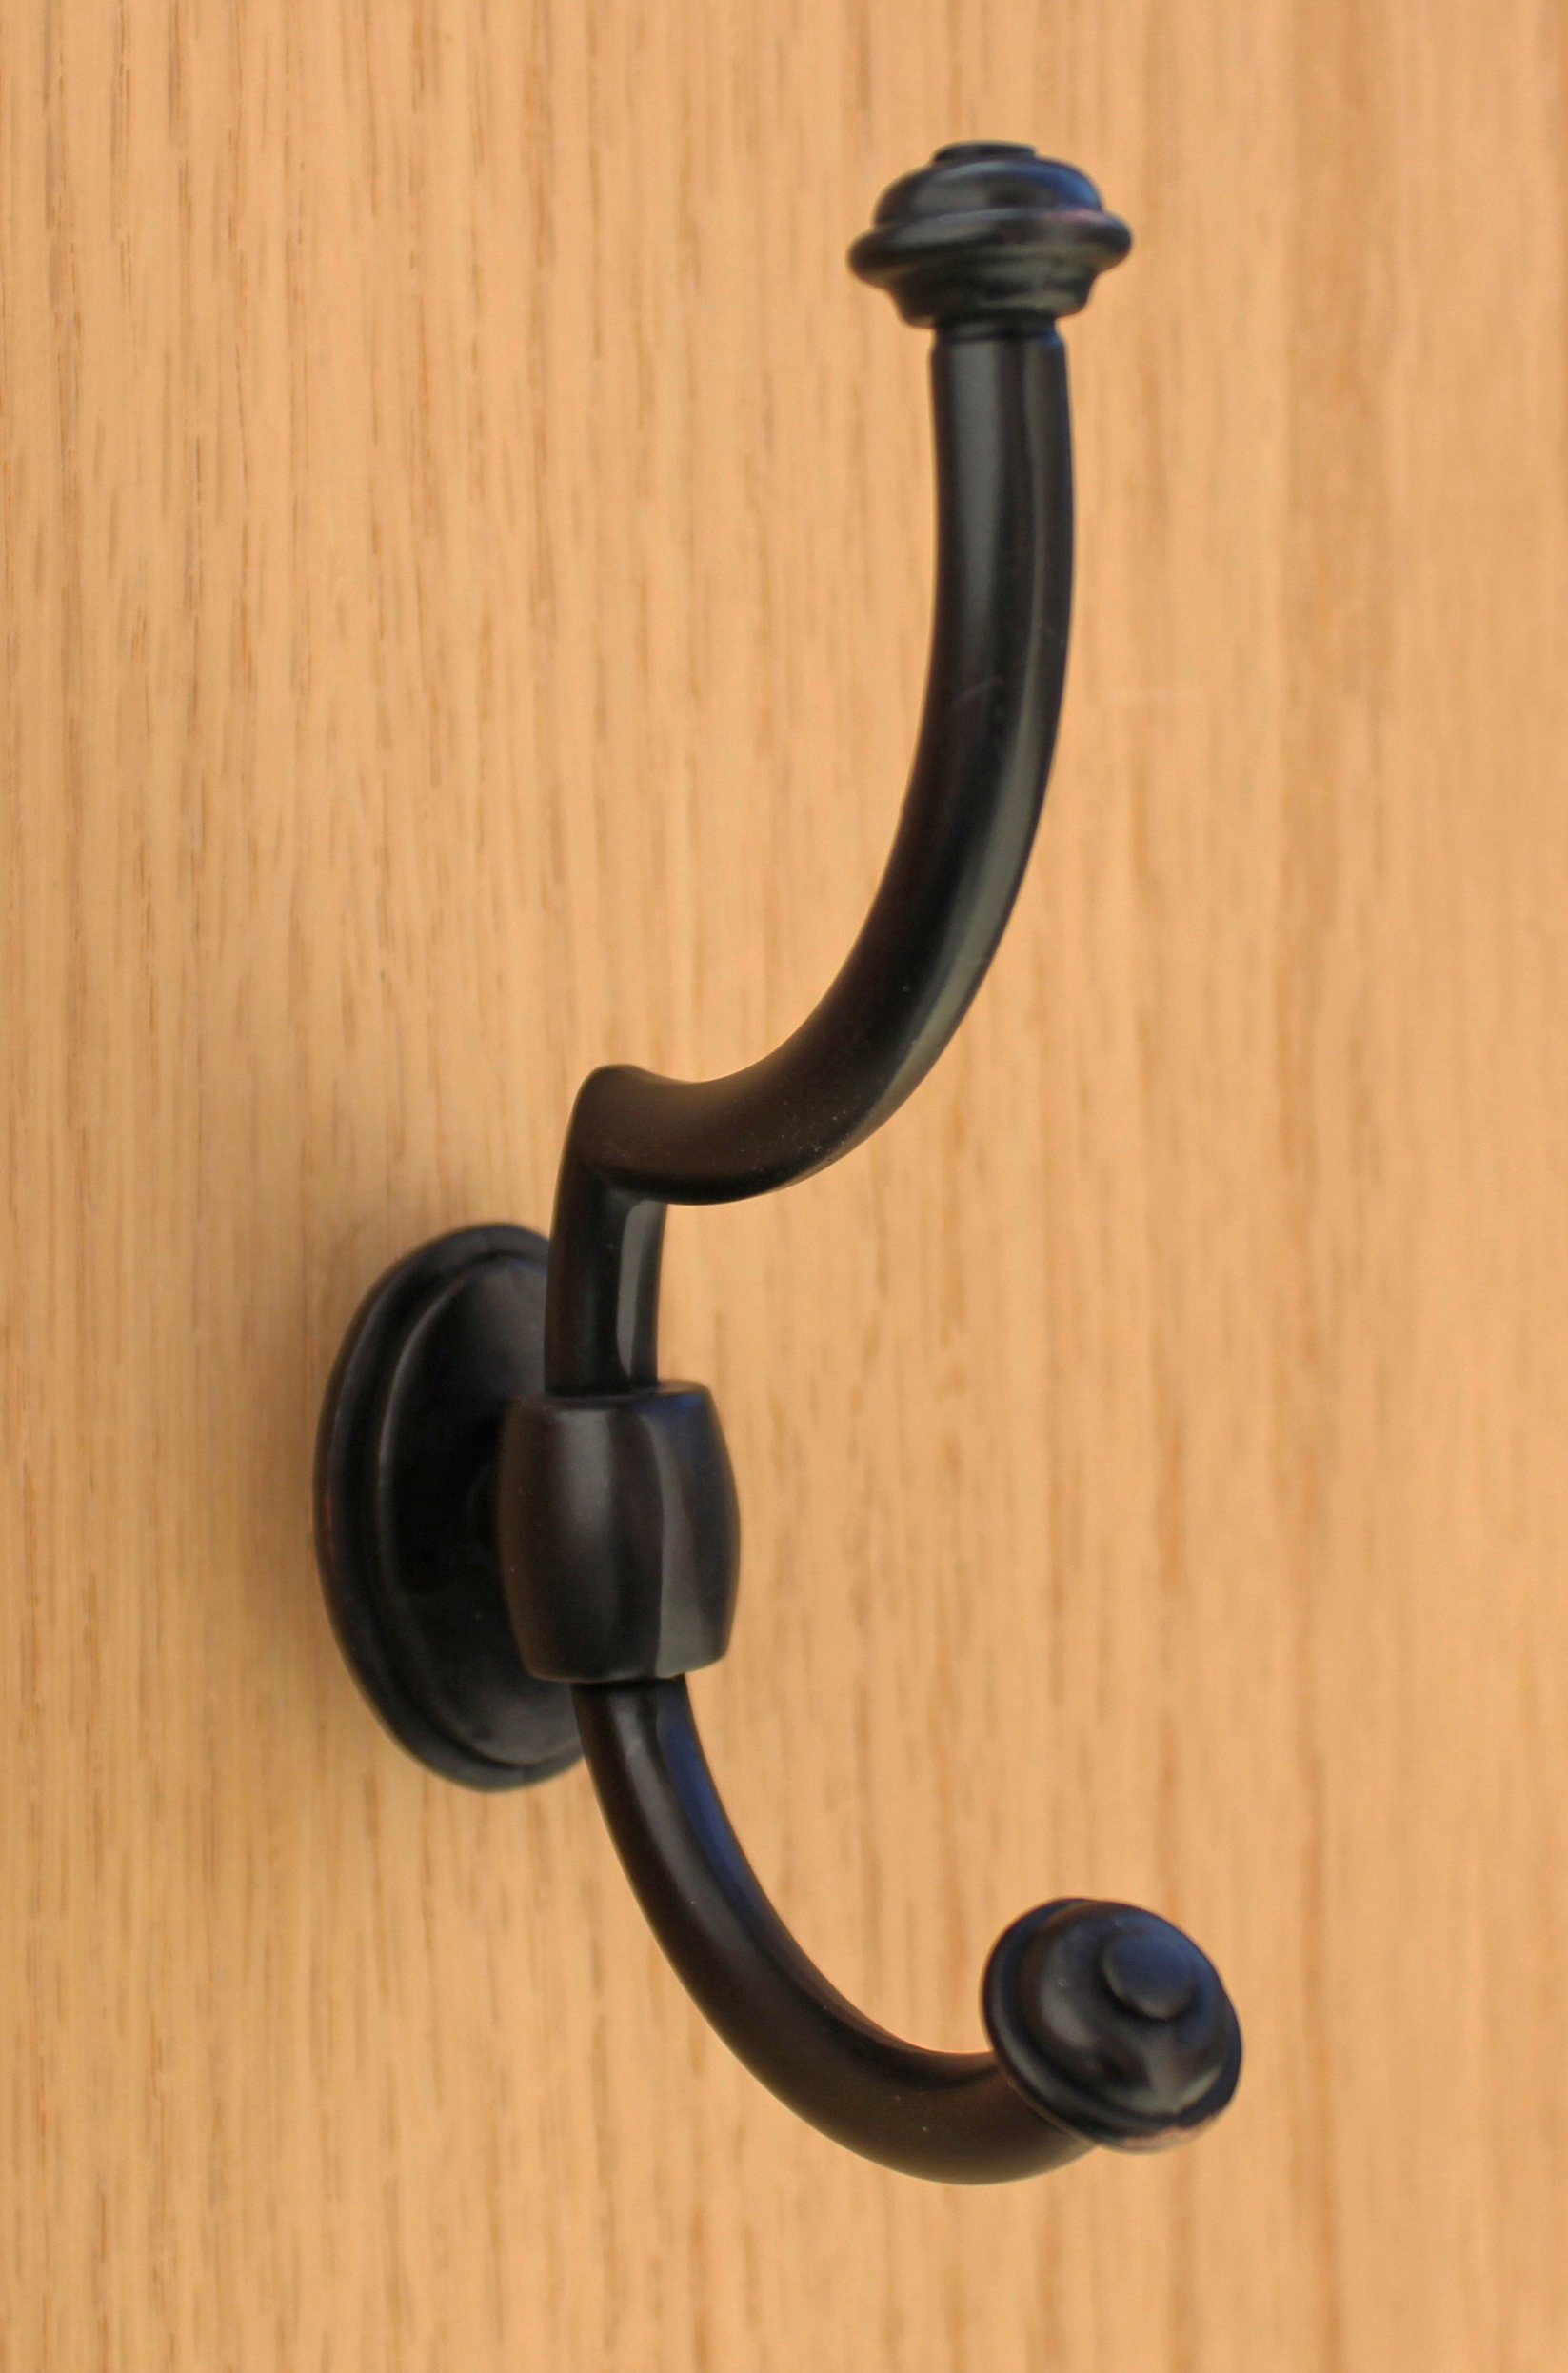 GlideRite Hardware 7502-ORB-50 large 5 x 3.5 inch Oil Rubbed Bronze Robe/COAT Hooks 50 Pack by GlideRite Hardware (Image #5)